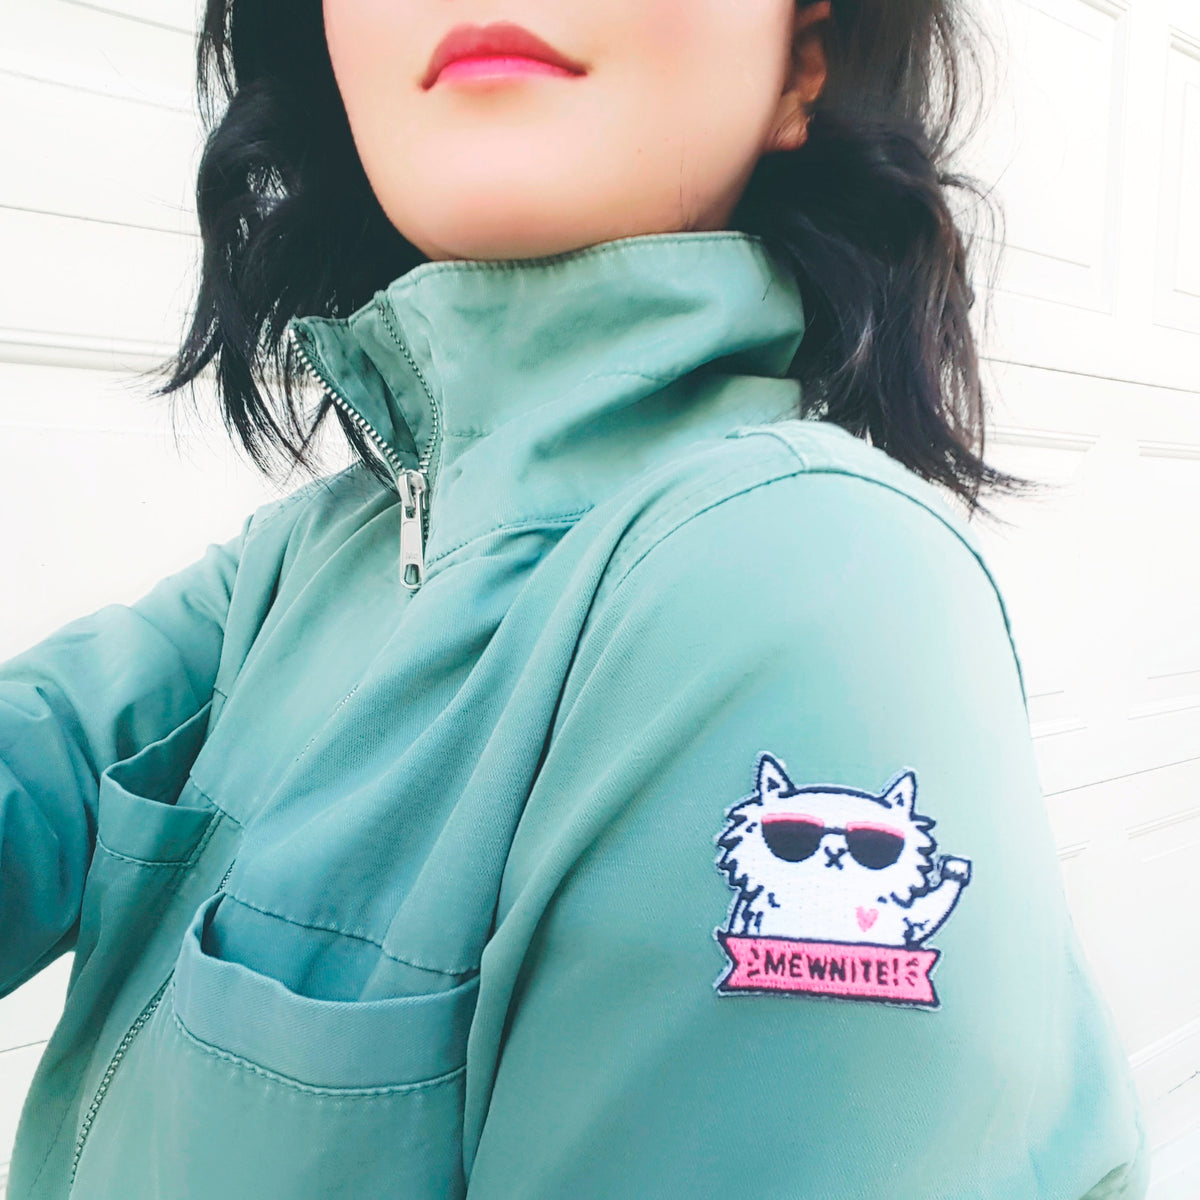 Mewnite! - Iron-on embroidered patch with an illustration of cat supporting feminism, women and girl power.